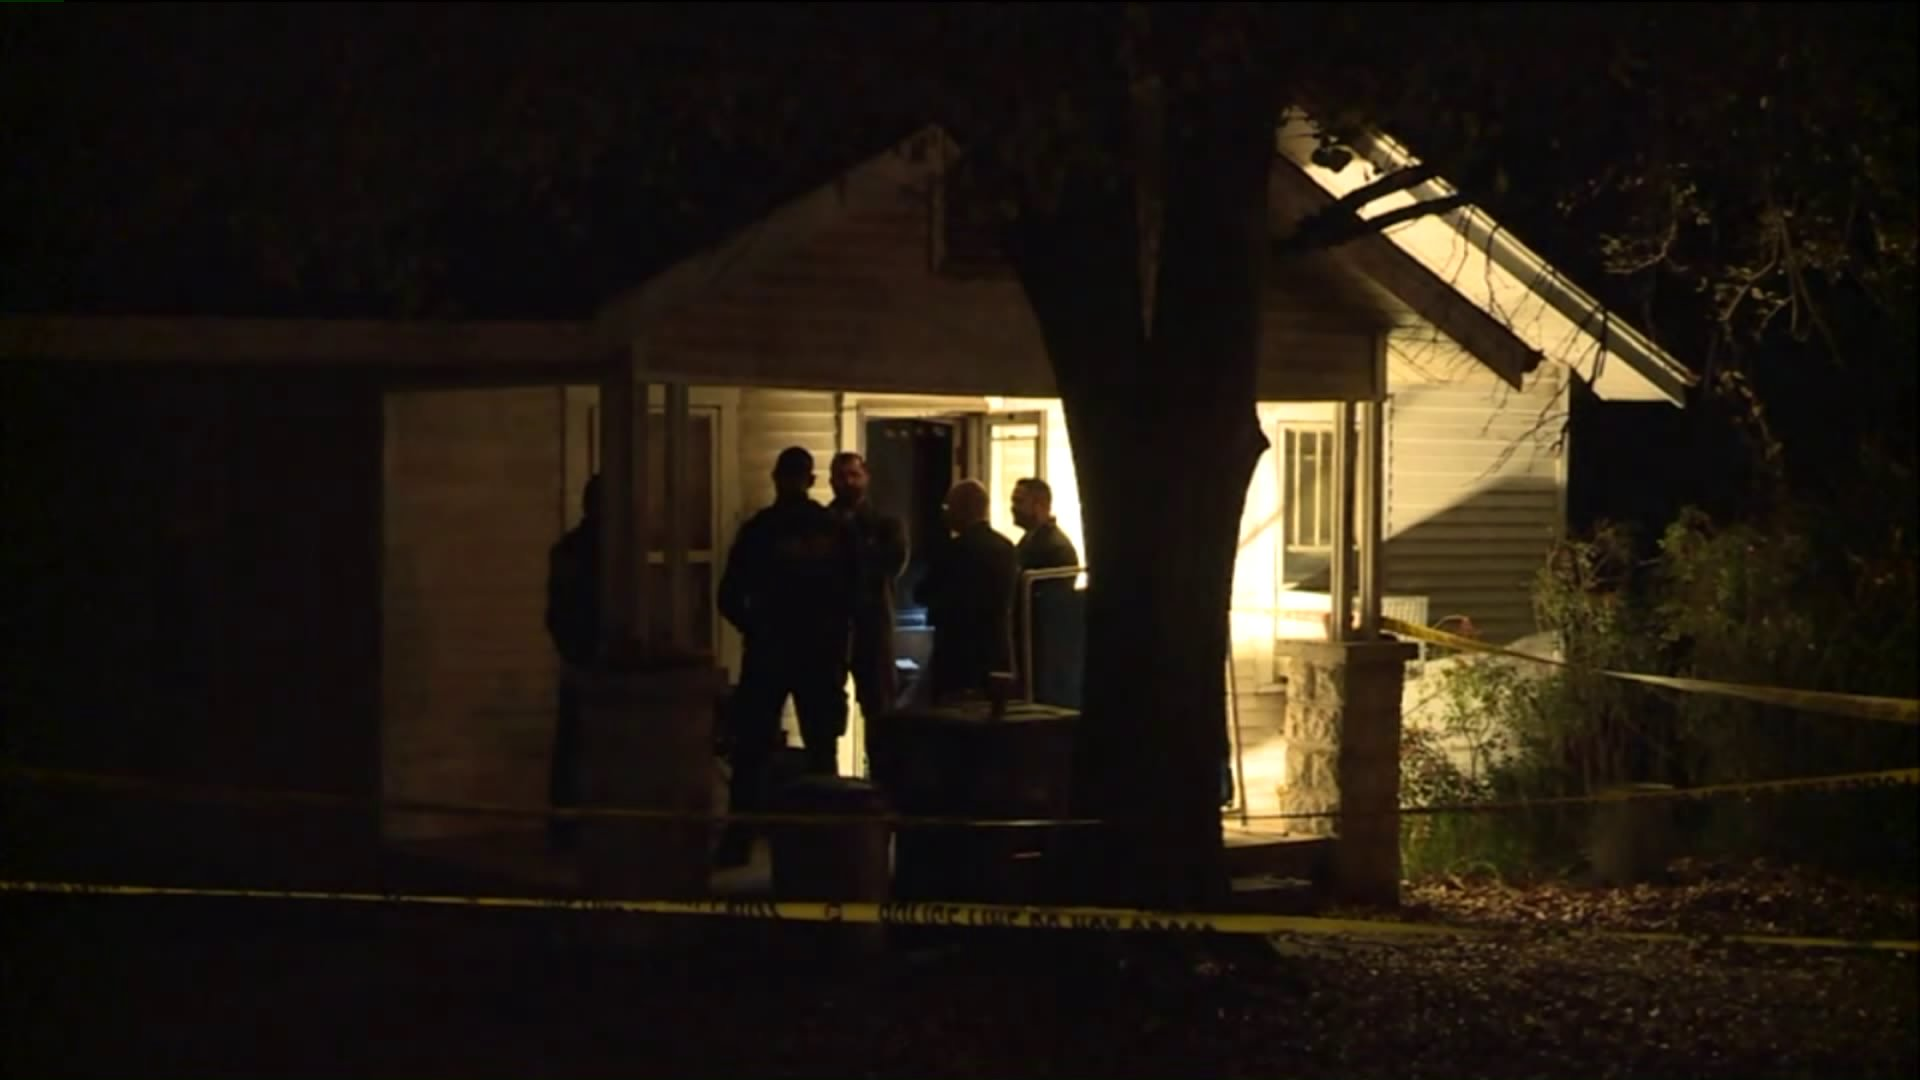 Gruesome Discovery Made During Police Welfare Check in Arkansas